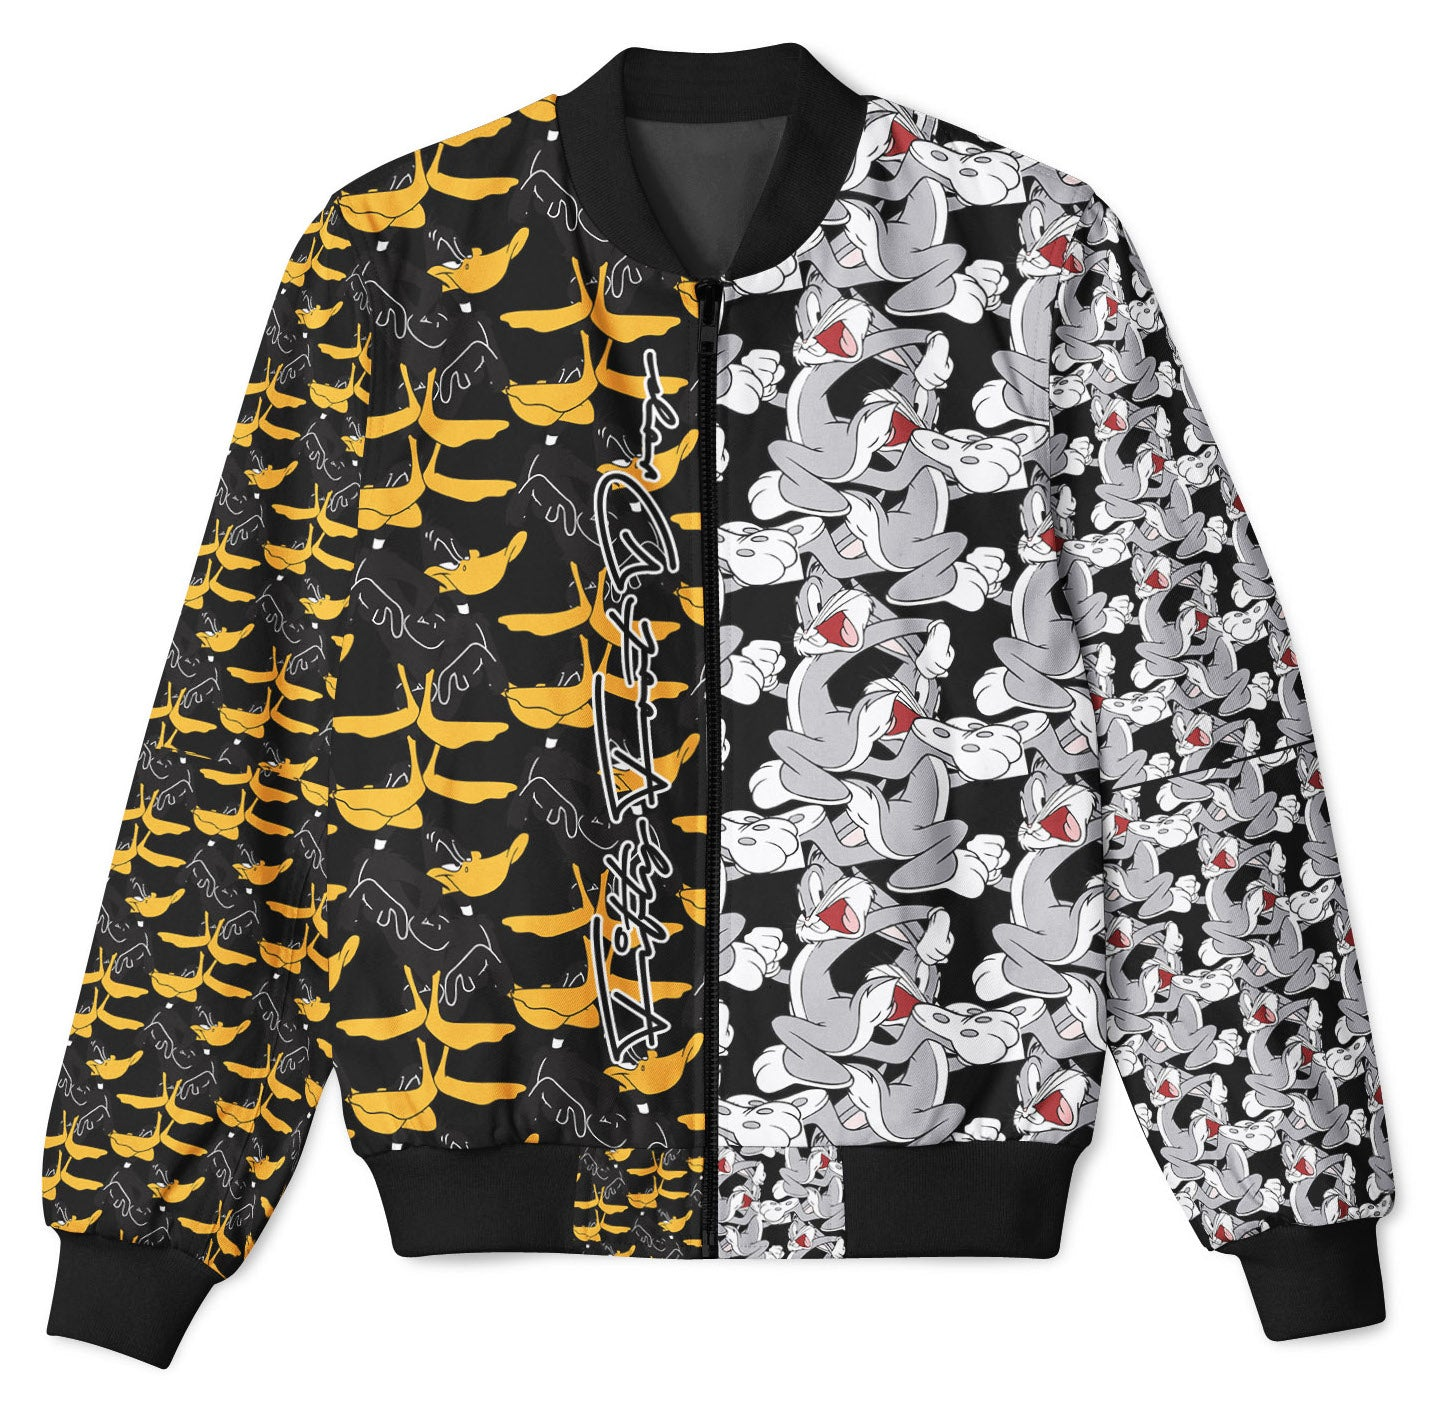 LOONEY MASH UP - FIFTY FOOT DROP - BOMBER JACKET  Fifty Foot Drop  fresh-on-road.myshopify.com Fifty Foot Drop